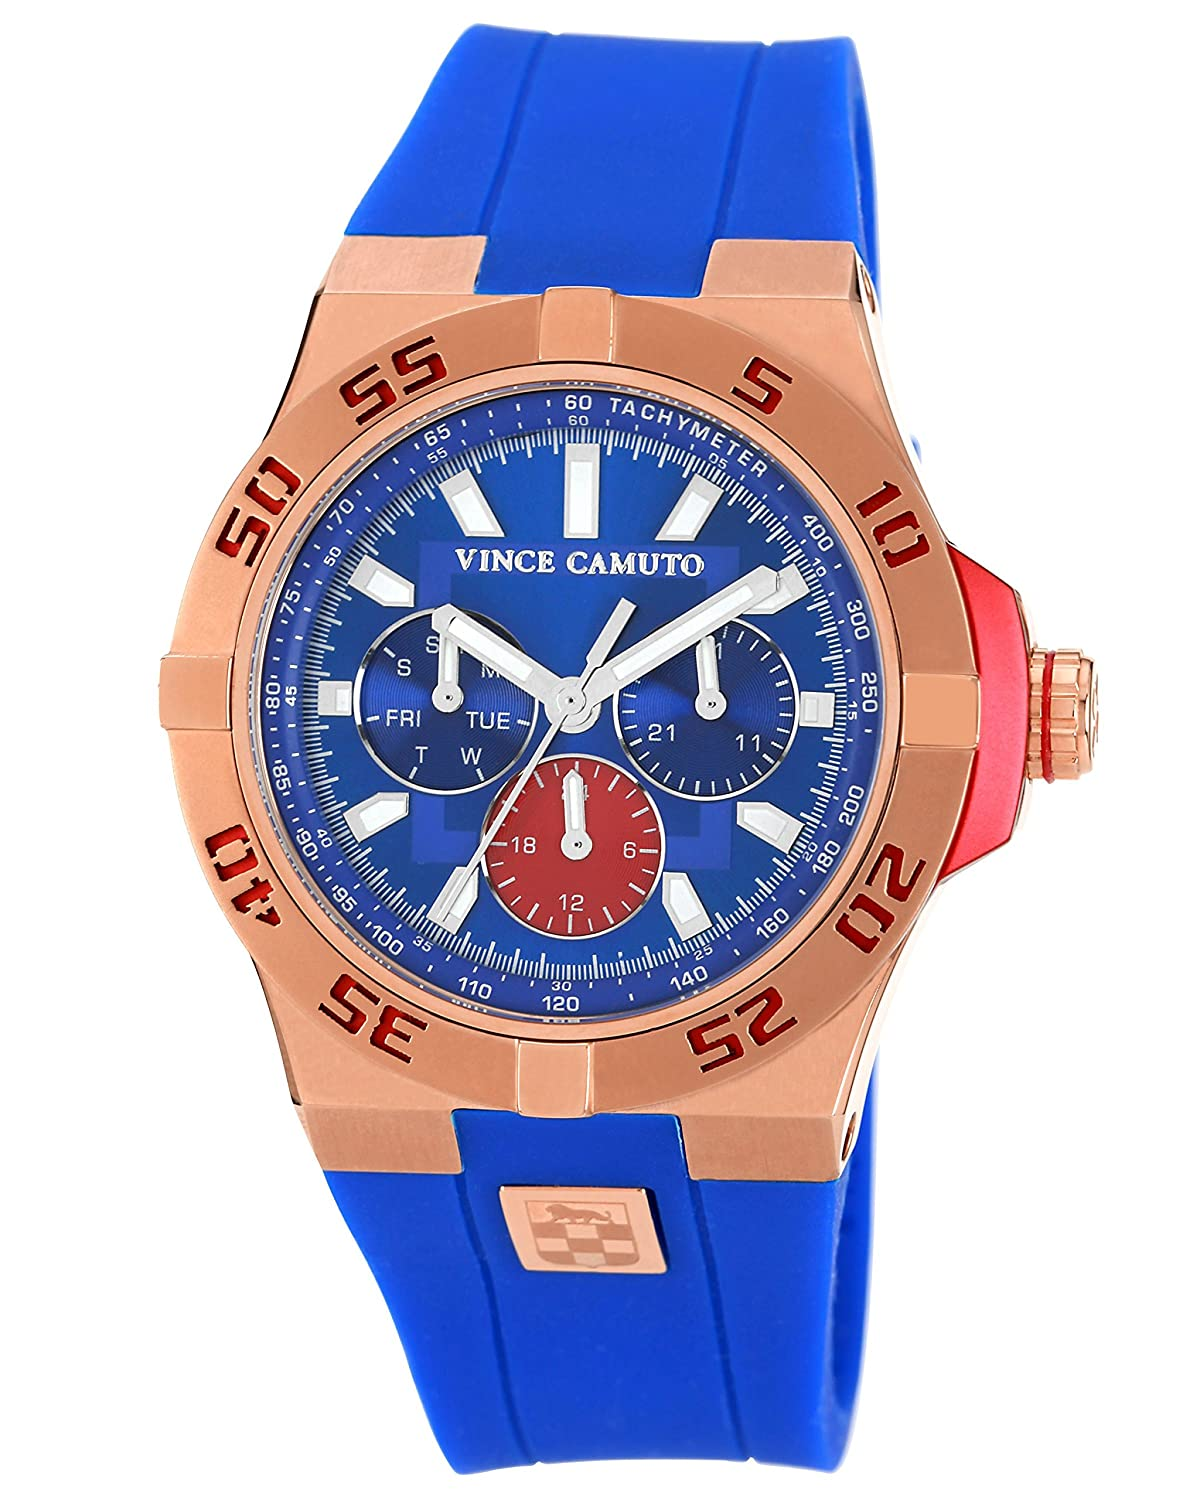 Vince Camuto Mens Vc 1010blrg The Master Stainless Casio Ae 1000w 1a Manamp039s Watch Waterproof Sports Electronic Steel Watches